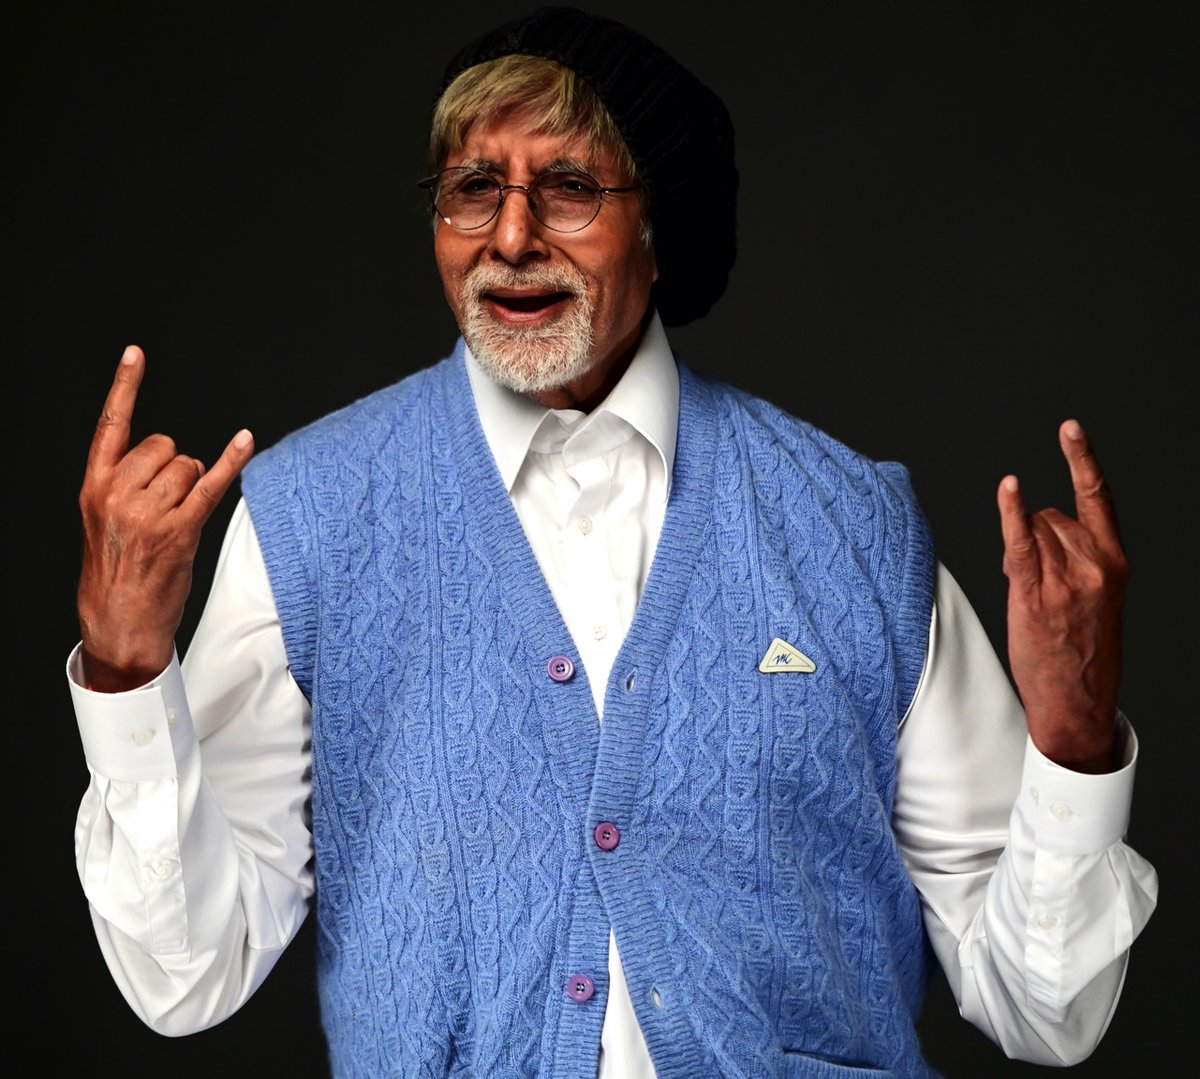 Replying to @SrBachchan: T 3658 - Work routines bring routines back ..